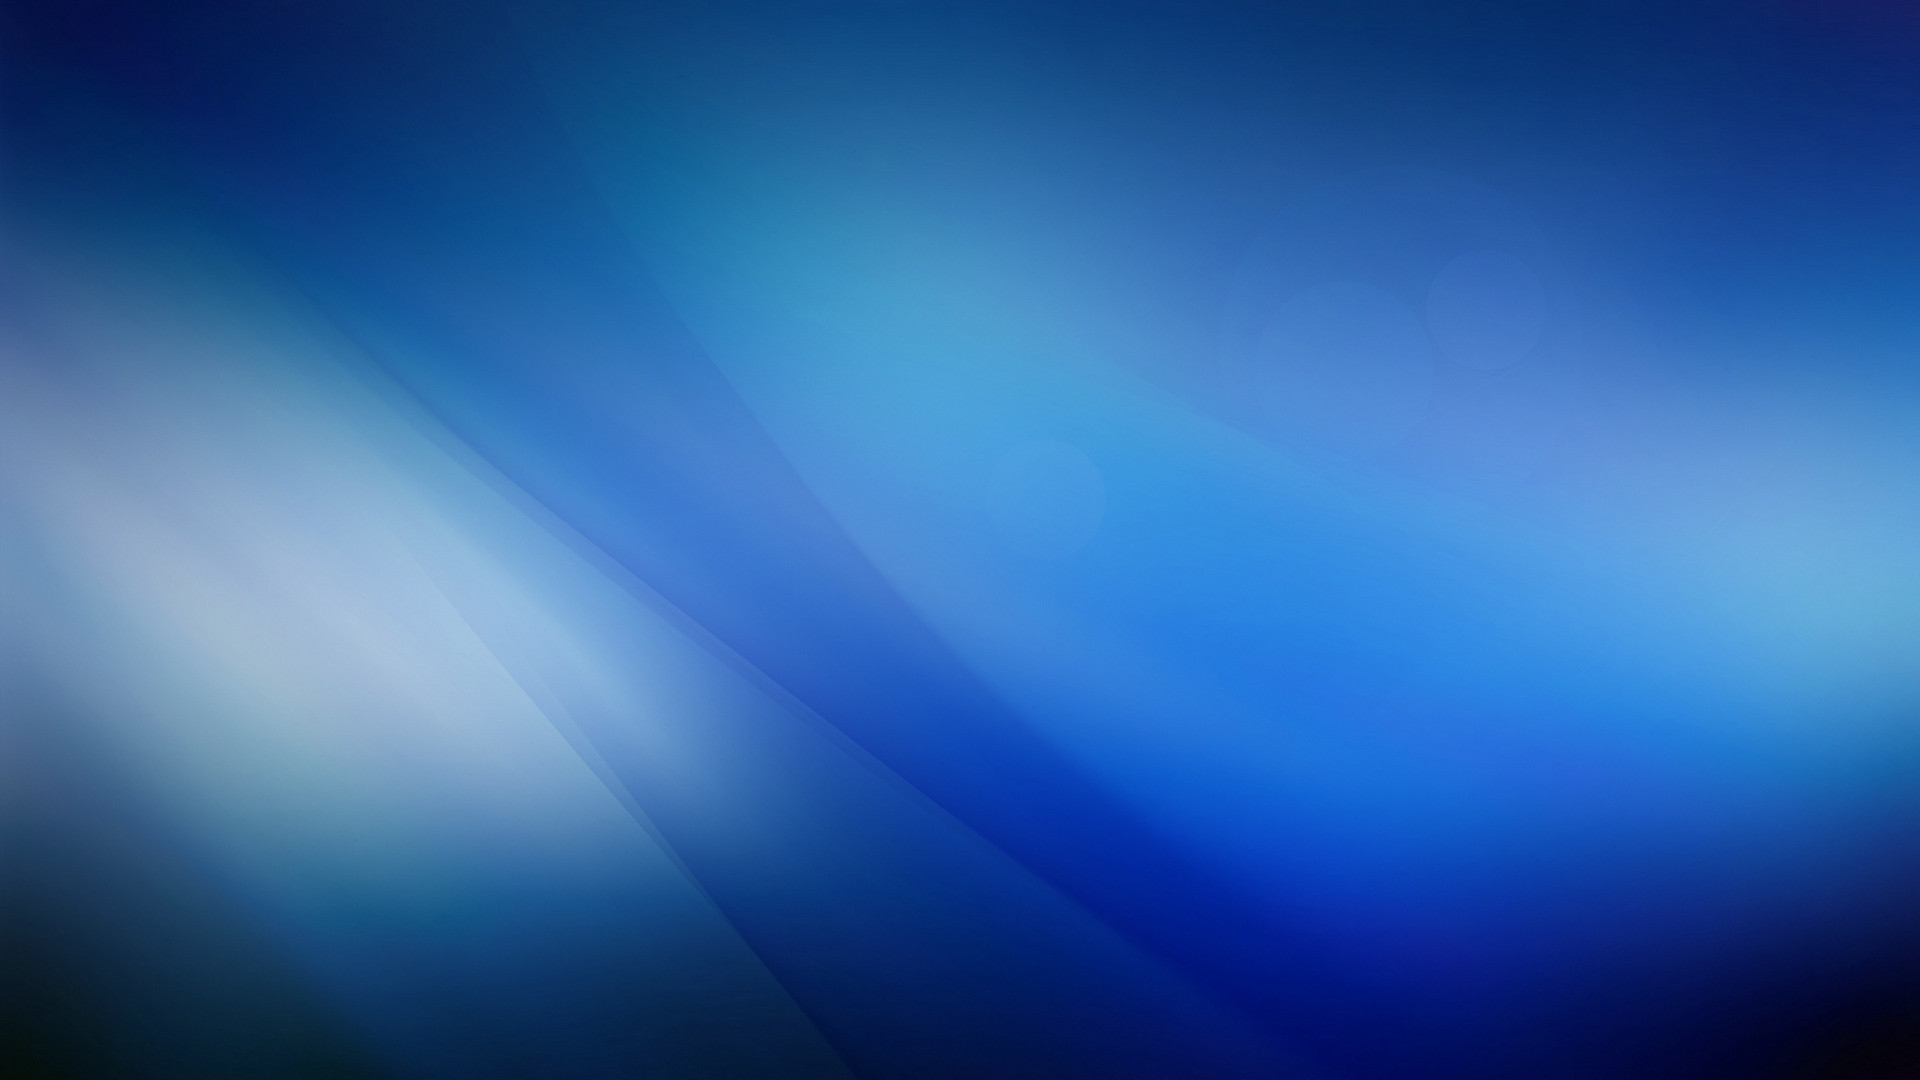 Blue Background Abstract Cool Mobile Wallpaper 1869 Full HD Wide 1920x1080